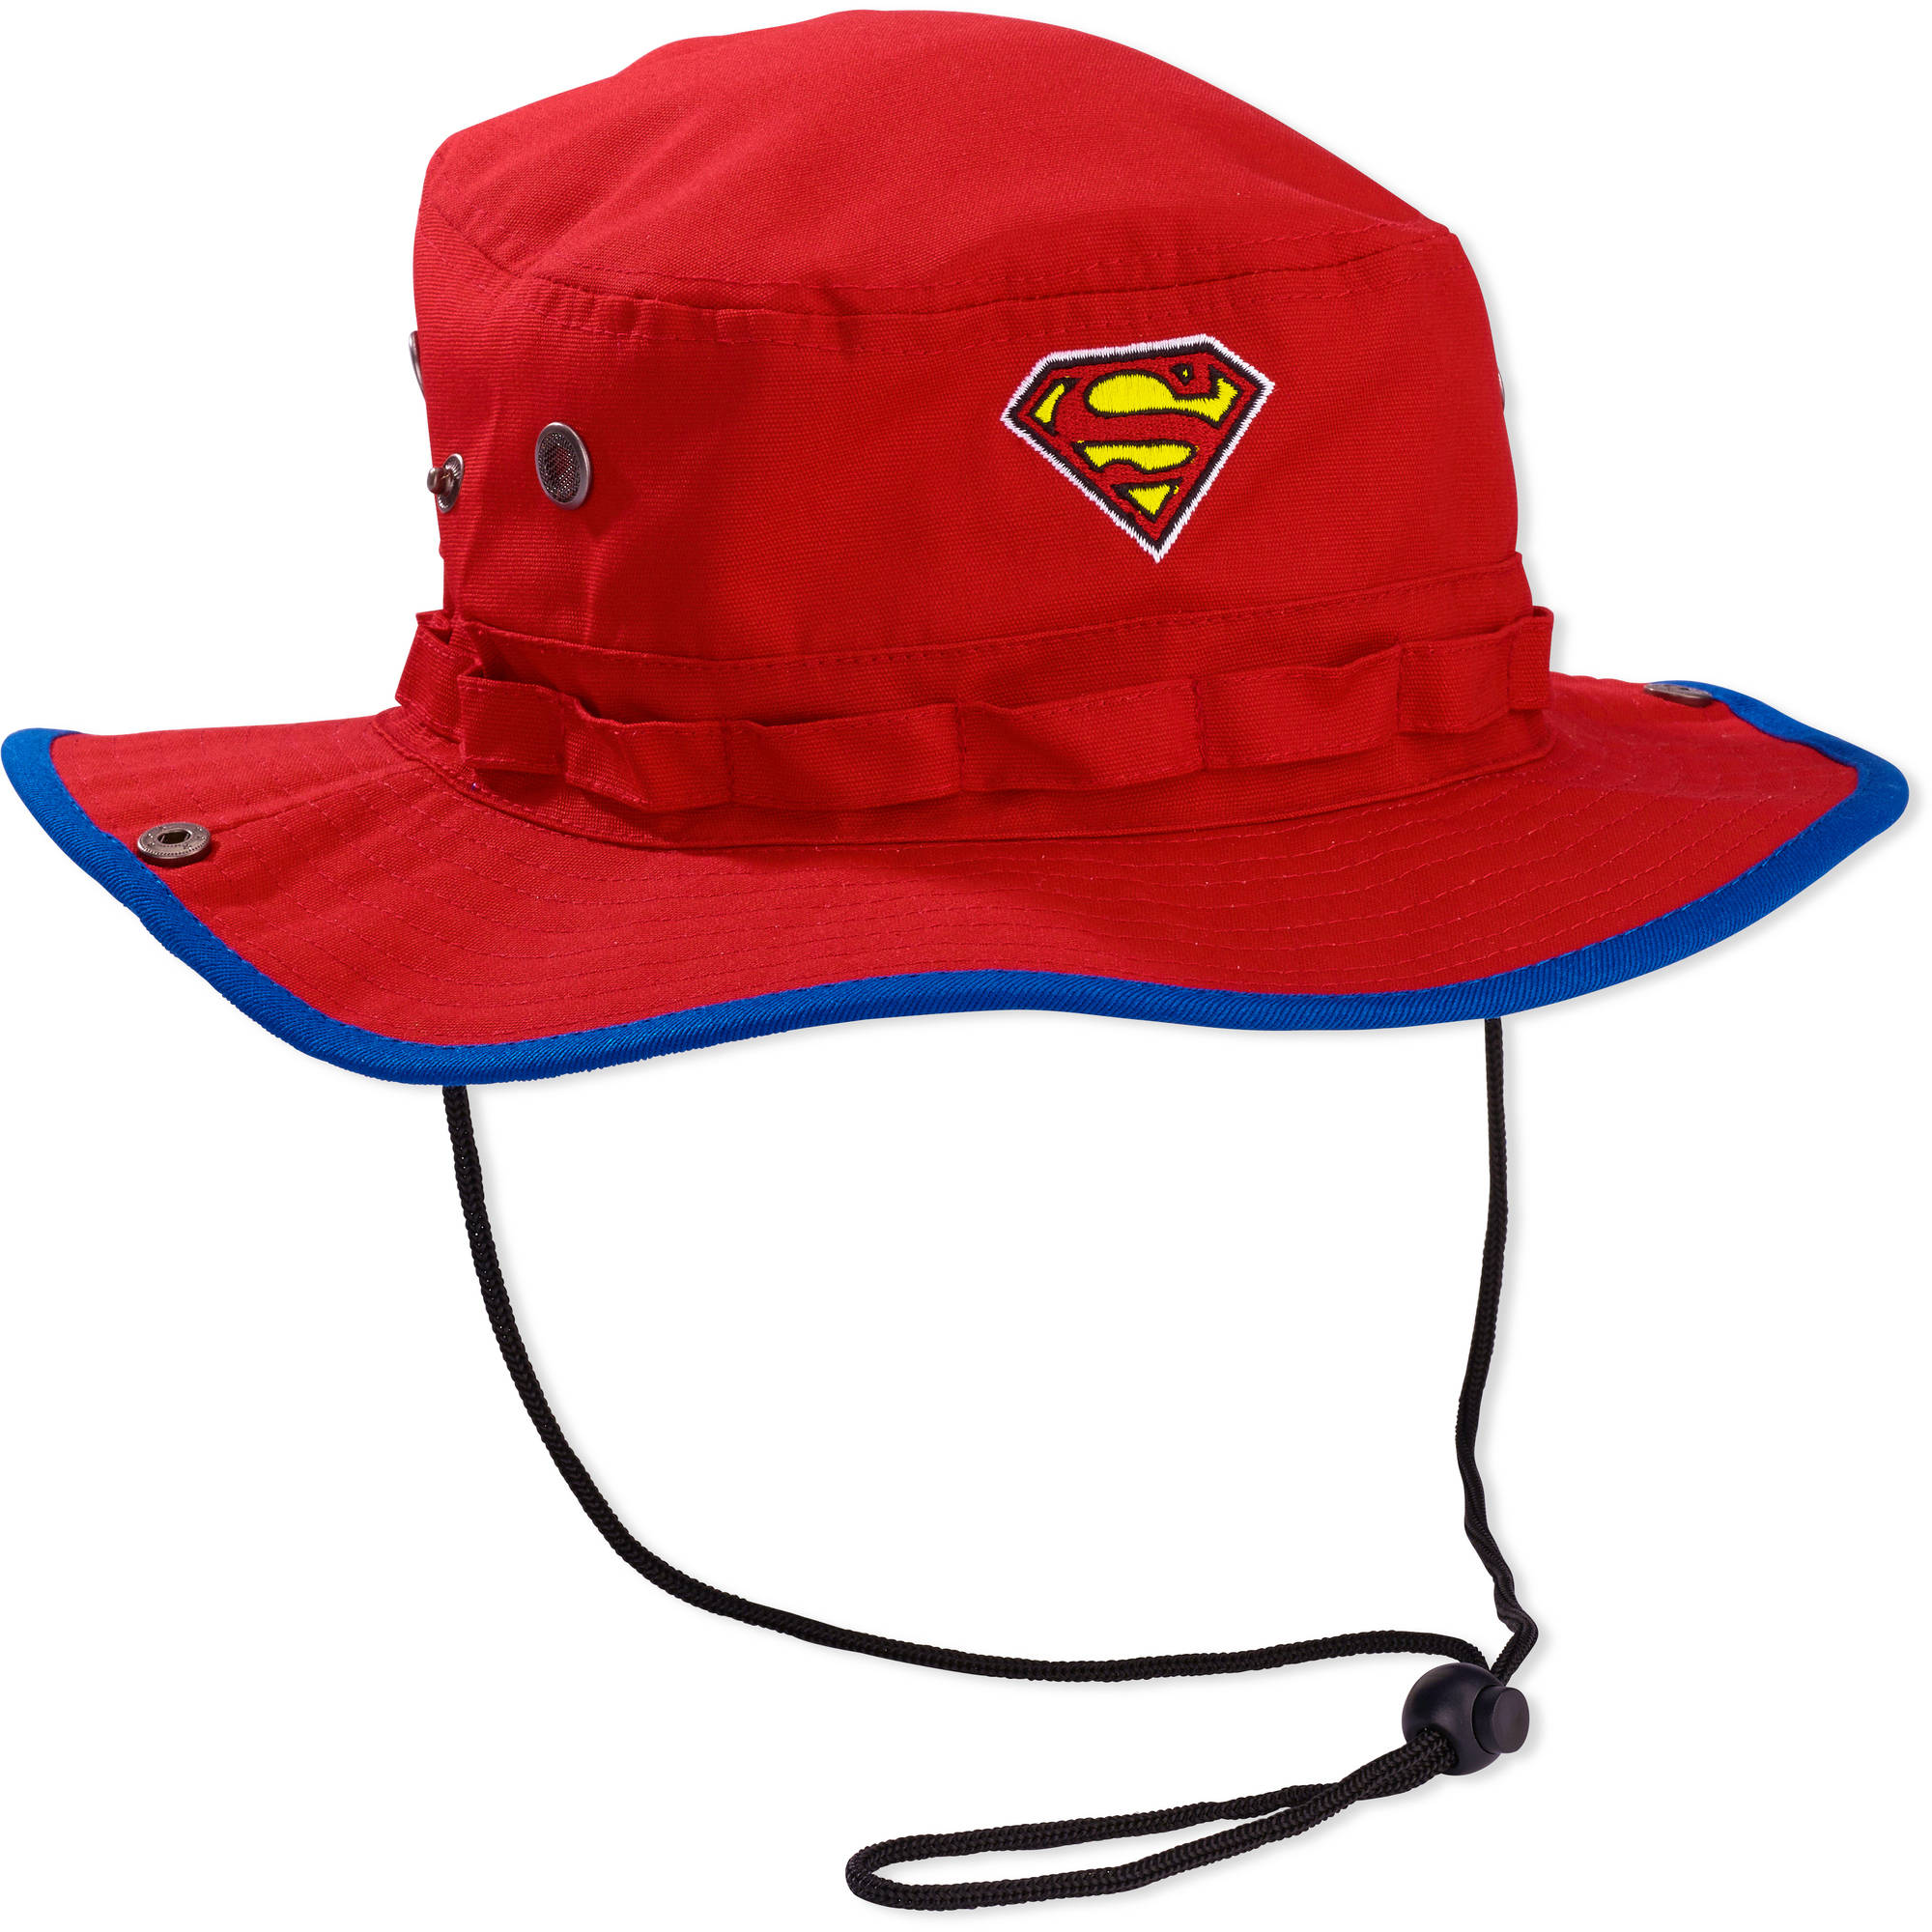 Men's Superman Boonie